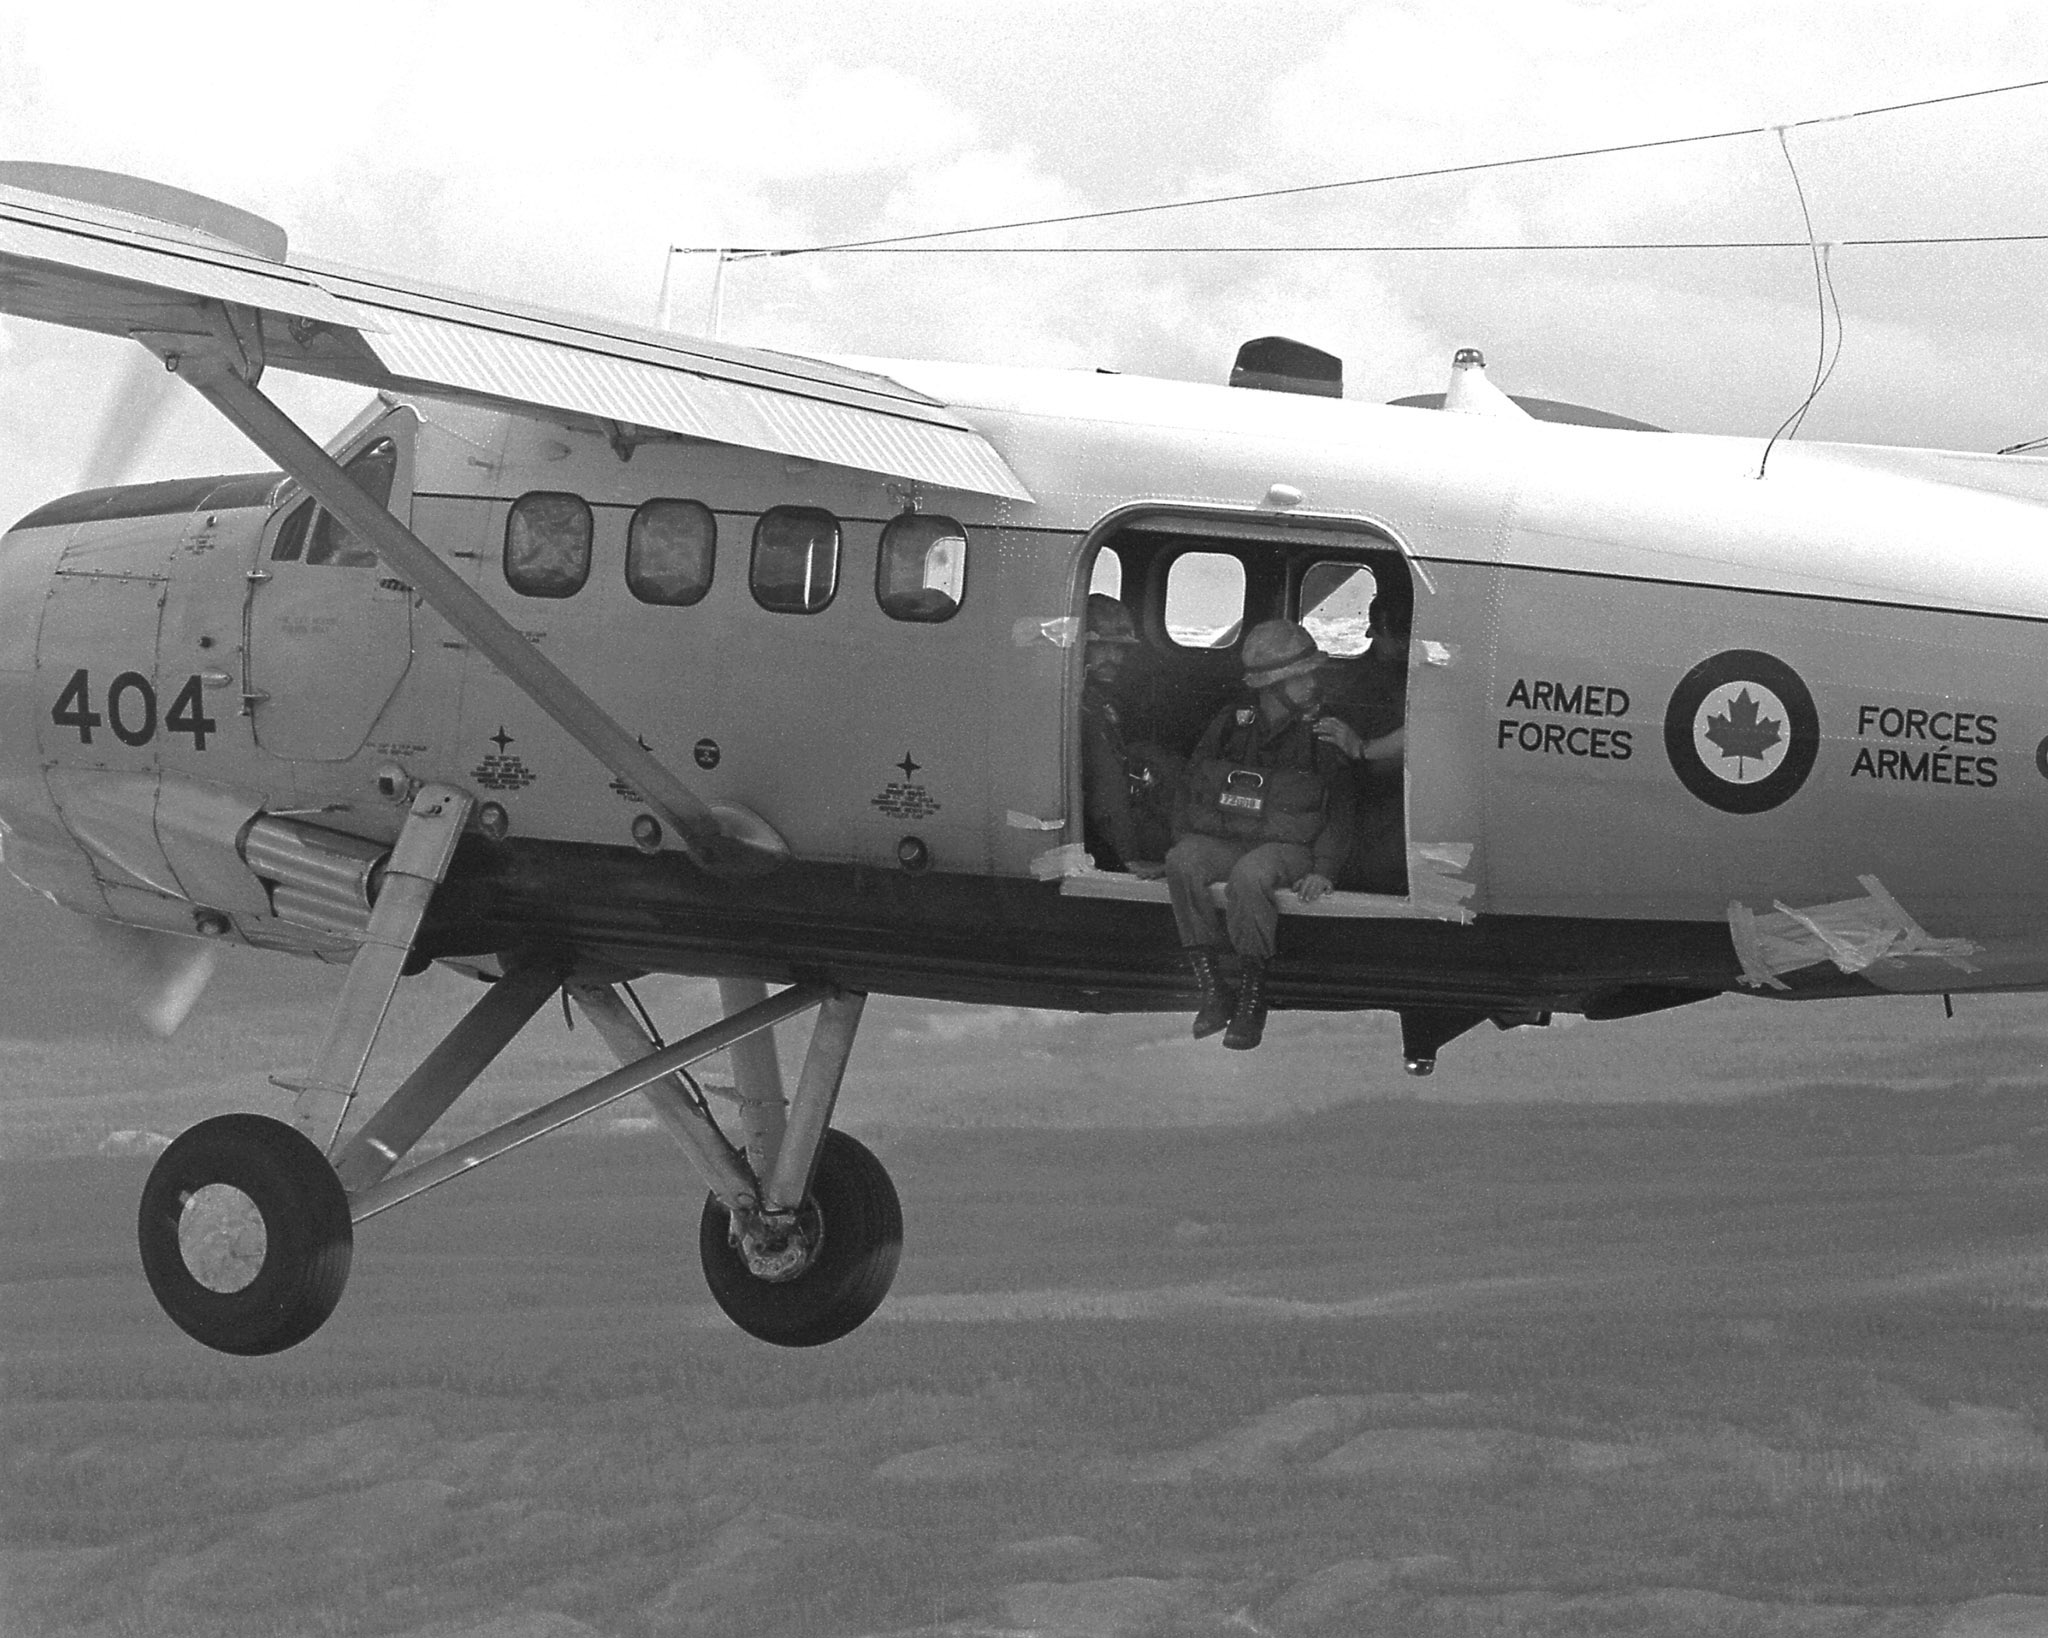 Members of the Canadian Airborne Regiment prepare to jump from a 418 Squadron de Havilland DHC-3 Otter in June 1973. 418 Squadron flew the Otter in the 1960s and 1970s and in 1975 converted to the Twin Otter. PHOTO: DND Archives, IE-74-35-13